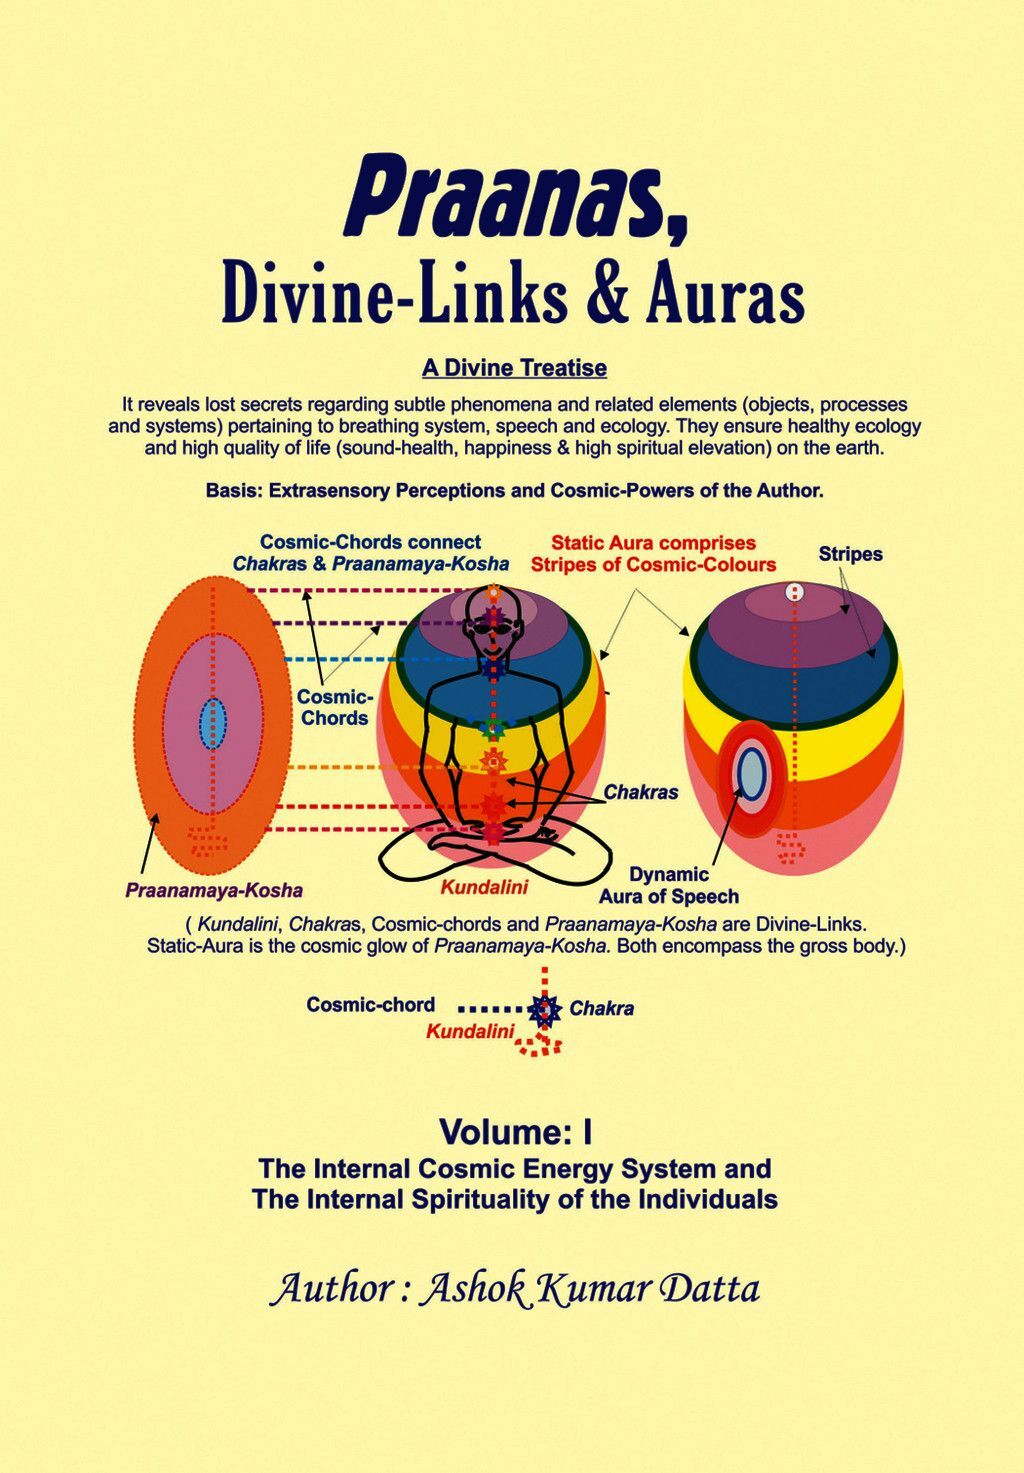 Praanas, Divine-Links, & Auras Volume I